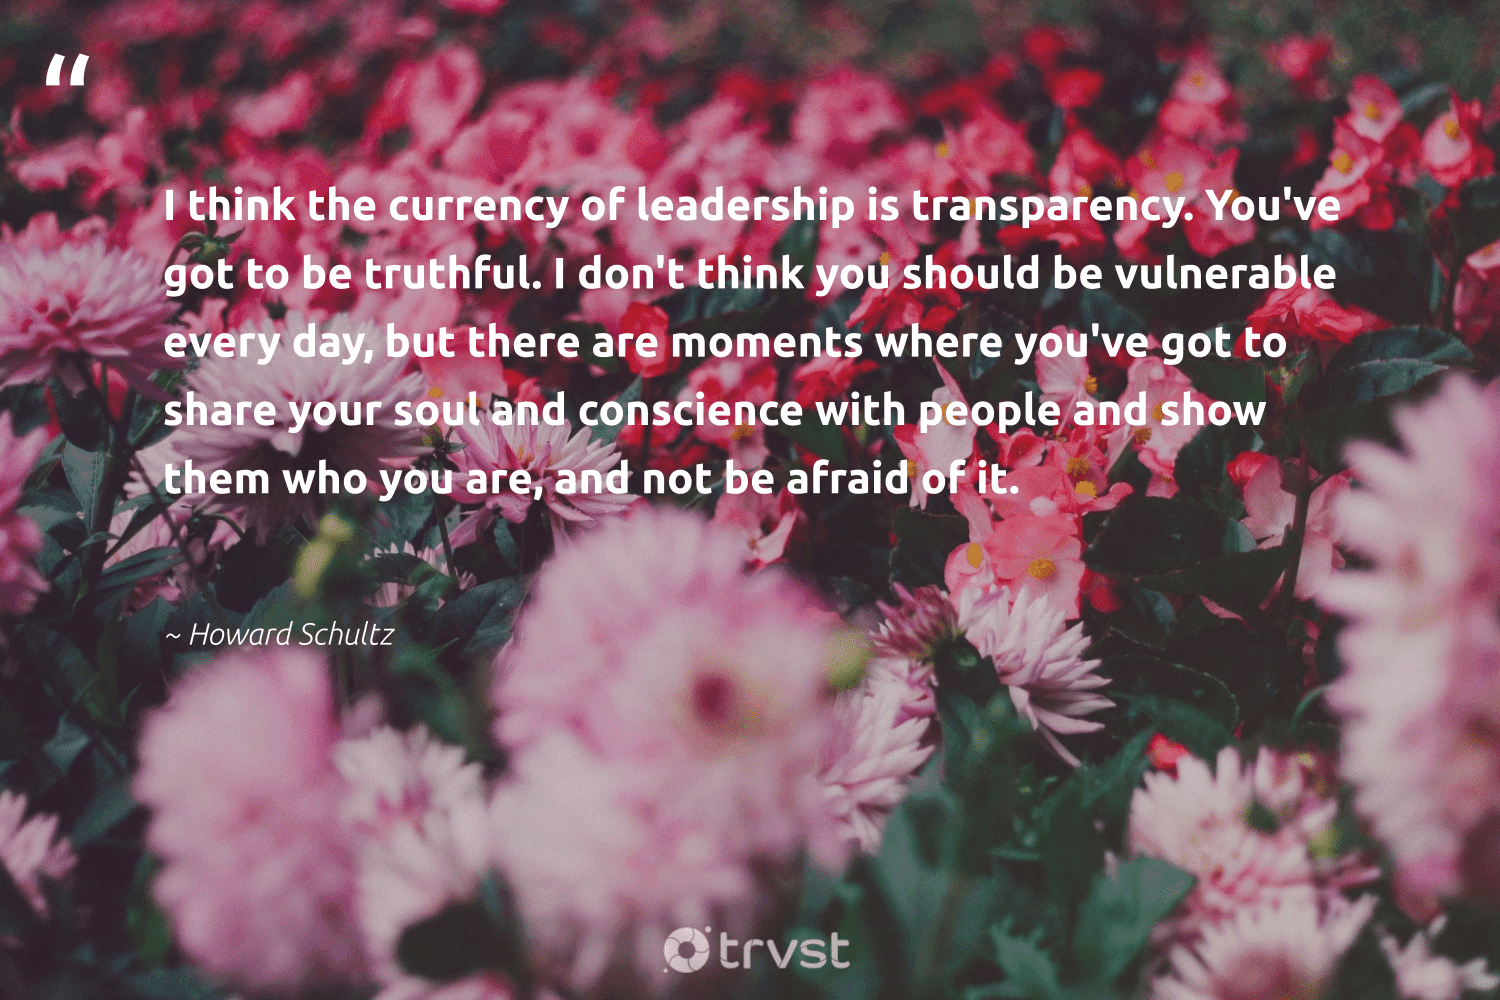 """I think the currency of leadership is transparency. You've got to be truthful. I don't think you should be vulnerable every day, but there are moments where you've got to share your soul and conscience with people and show them who you are, and not be afraid of it.""  - Howard Schultz #trvst #quotes #leadership #leadershipqualities #begreat #nevergiveup #socialchange #leadershipskills #futureofwork #softskills #ecoconscious #leadershipdevelopment"